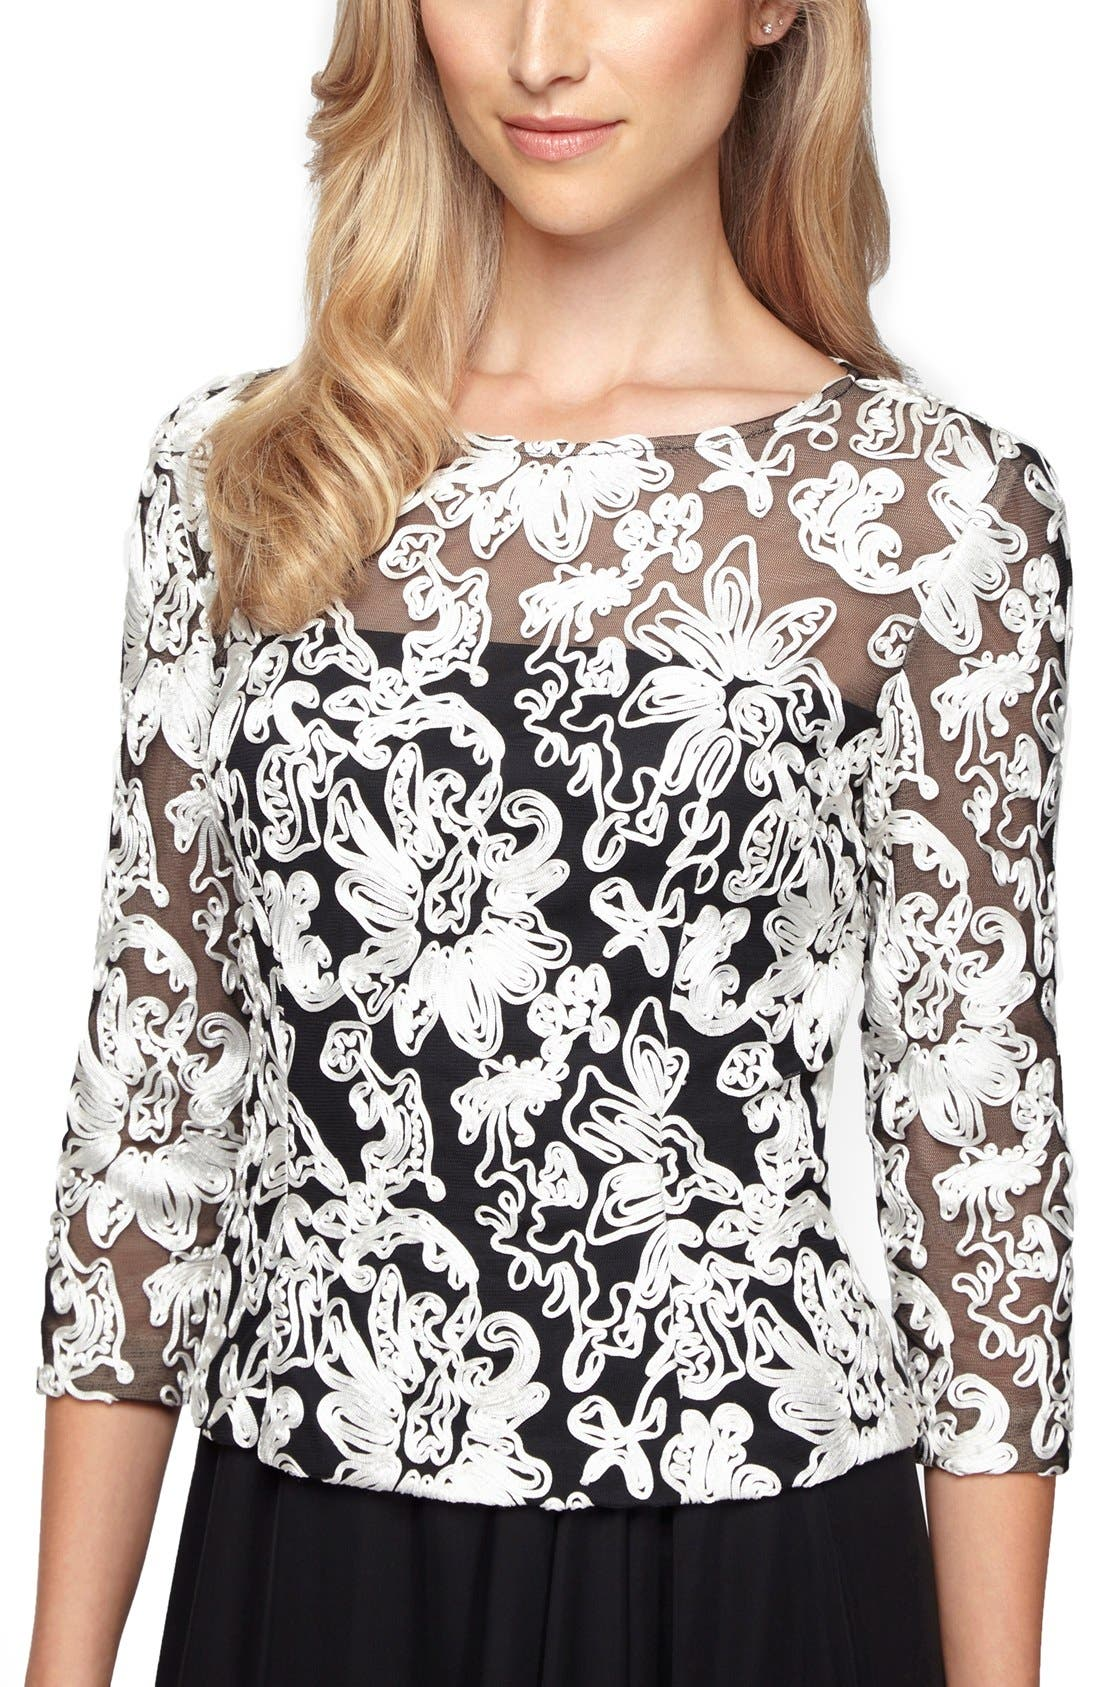 Swirling soutache embroidery adds texture and visual intrigue to an airy tulle top designed with a demure illusion yoke and sleeves that provide subtle coverage. Style Name: Alex Evenings Soutache Tulle Blouse. Style Number: 5106875. Available in stores.